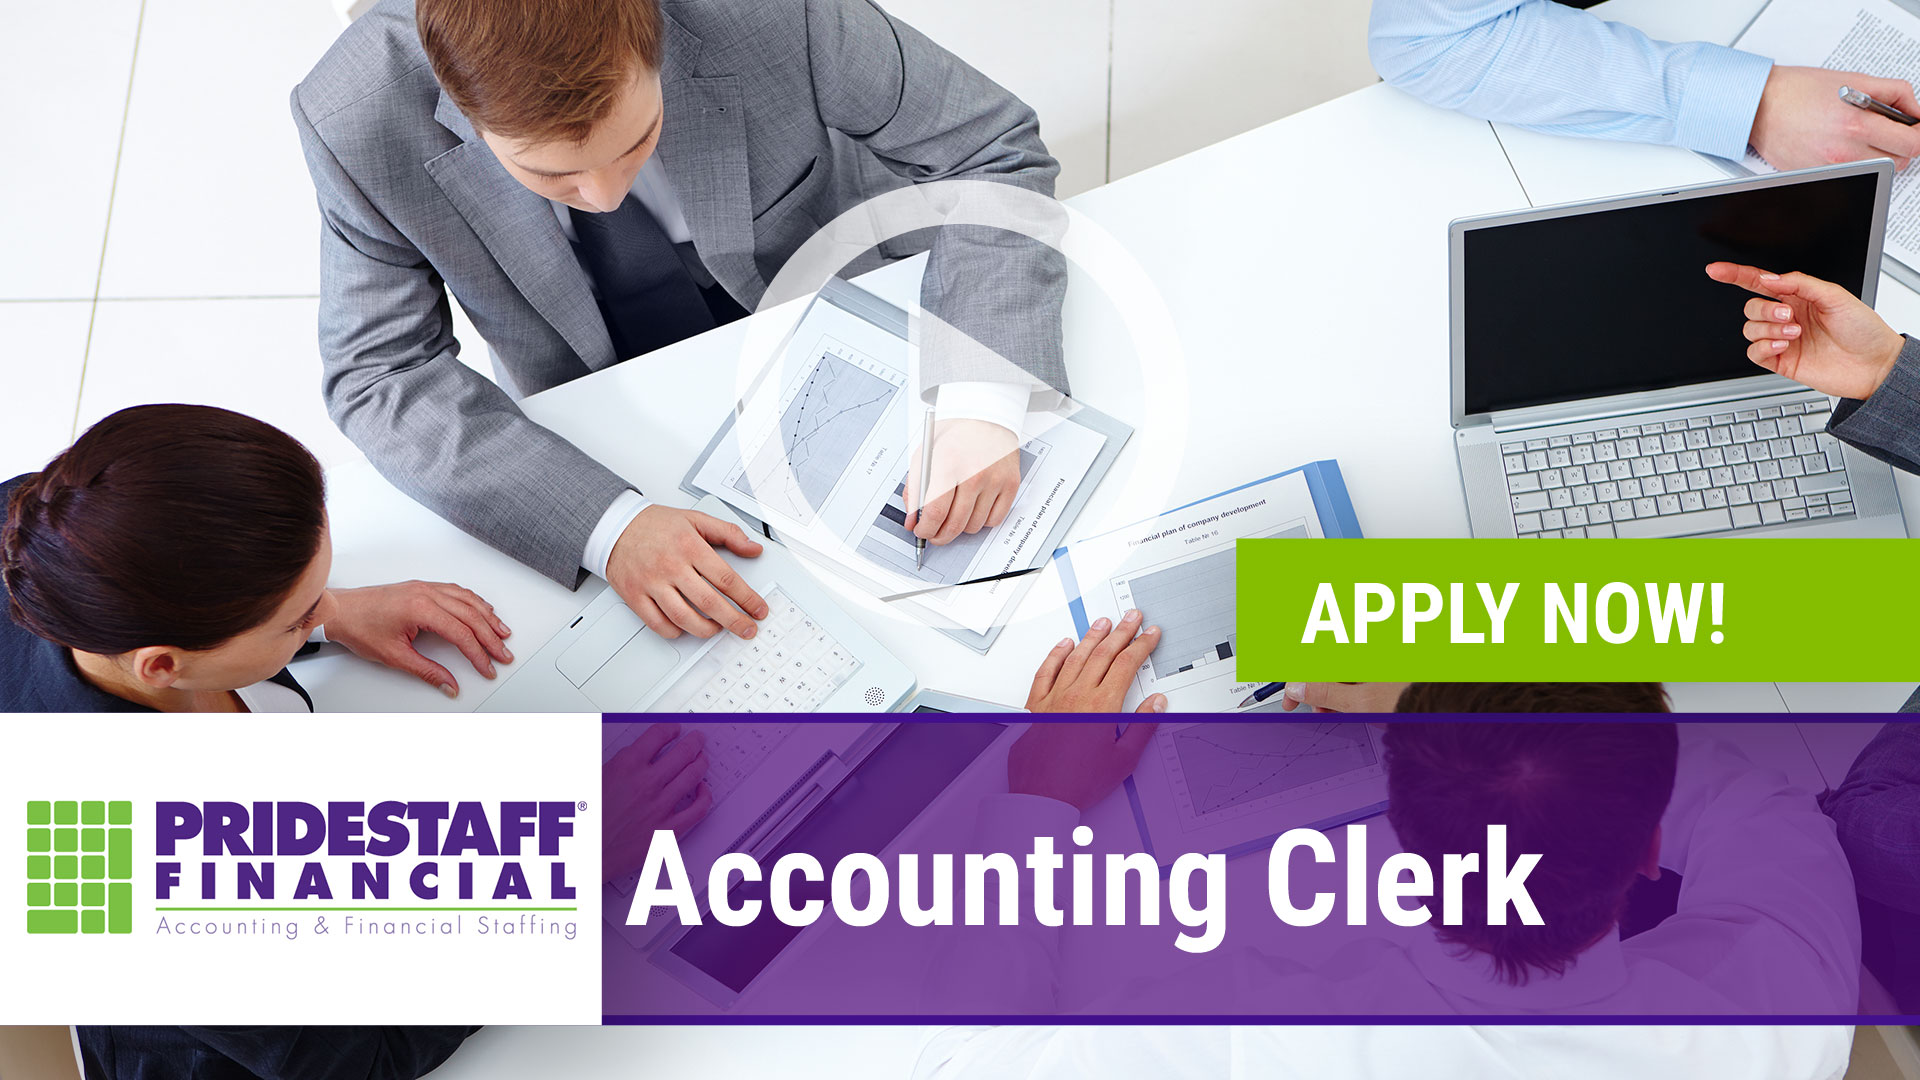 Watch our careers video for available job opening Accounting Clerk in North Dallas, Texas